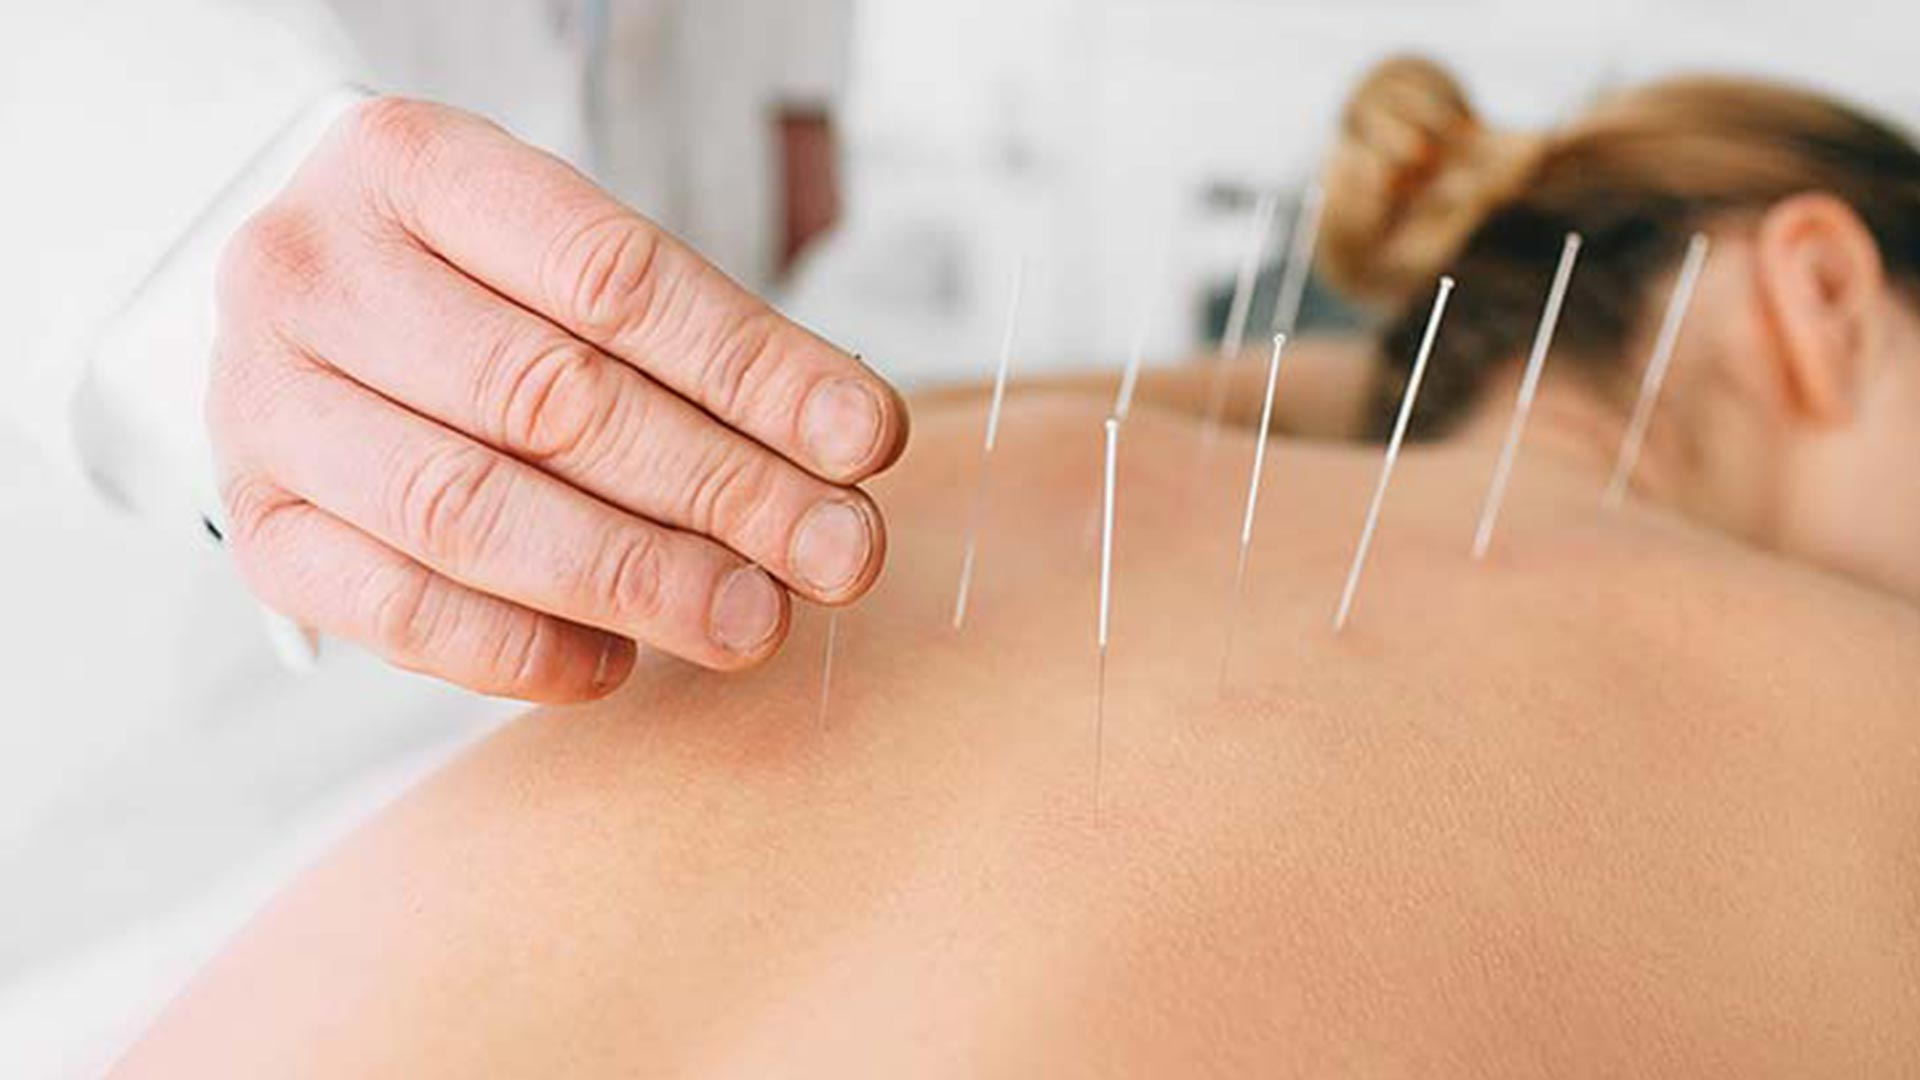 Acupuncture in York region